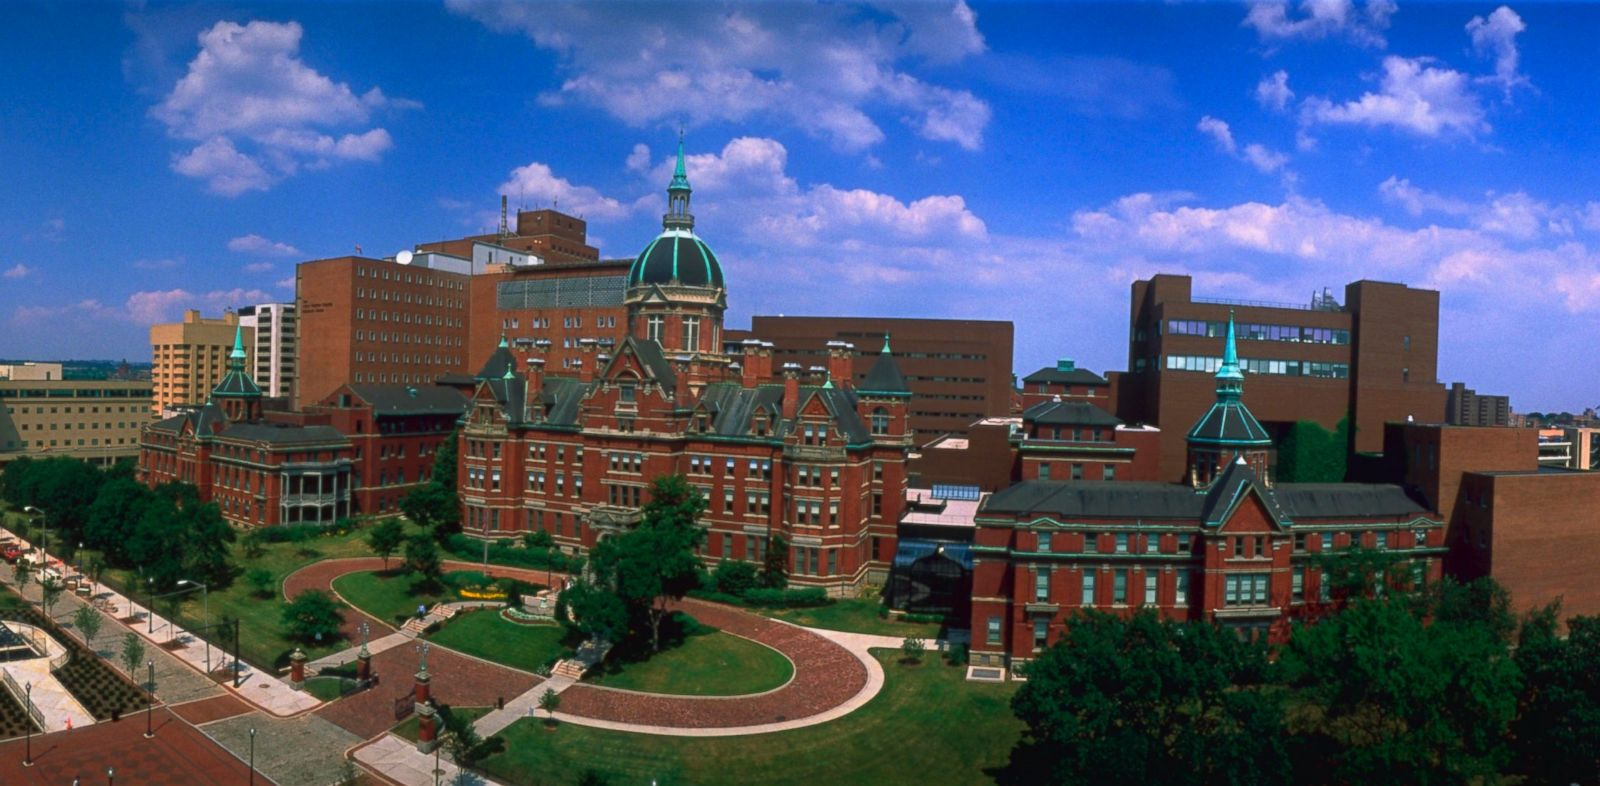 Transsexual operations at johns hopkins not meant